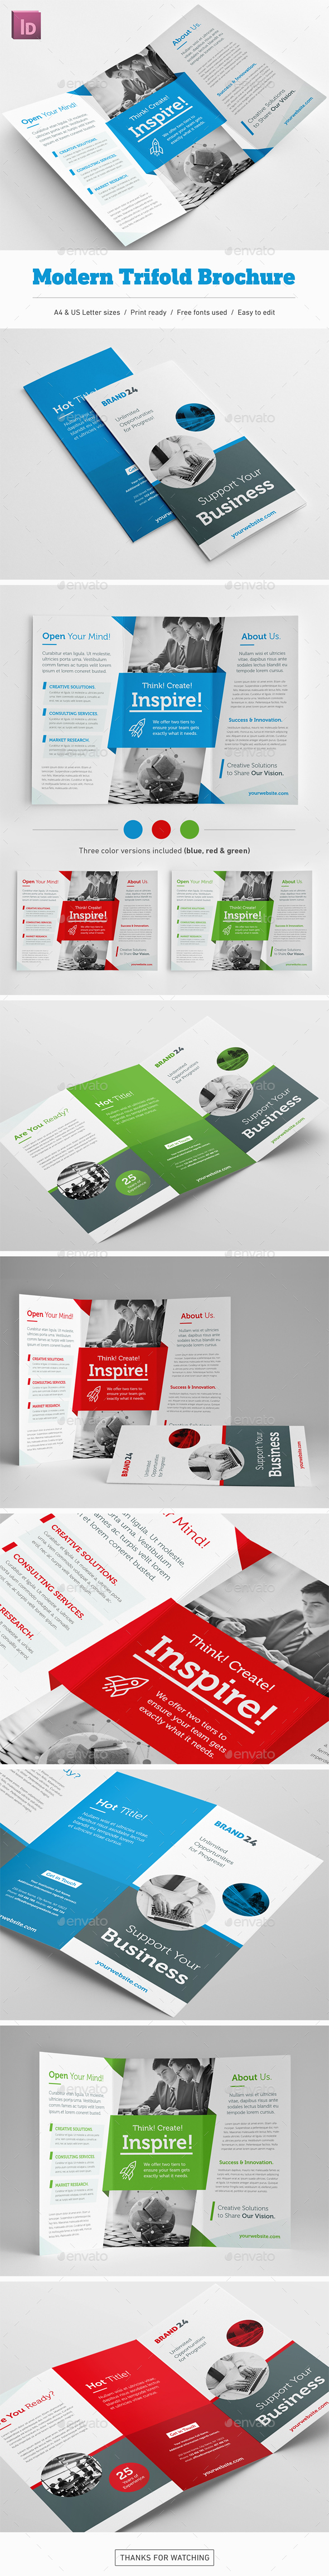 Modern Trifold Brochure - Corporate Brochures